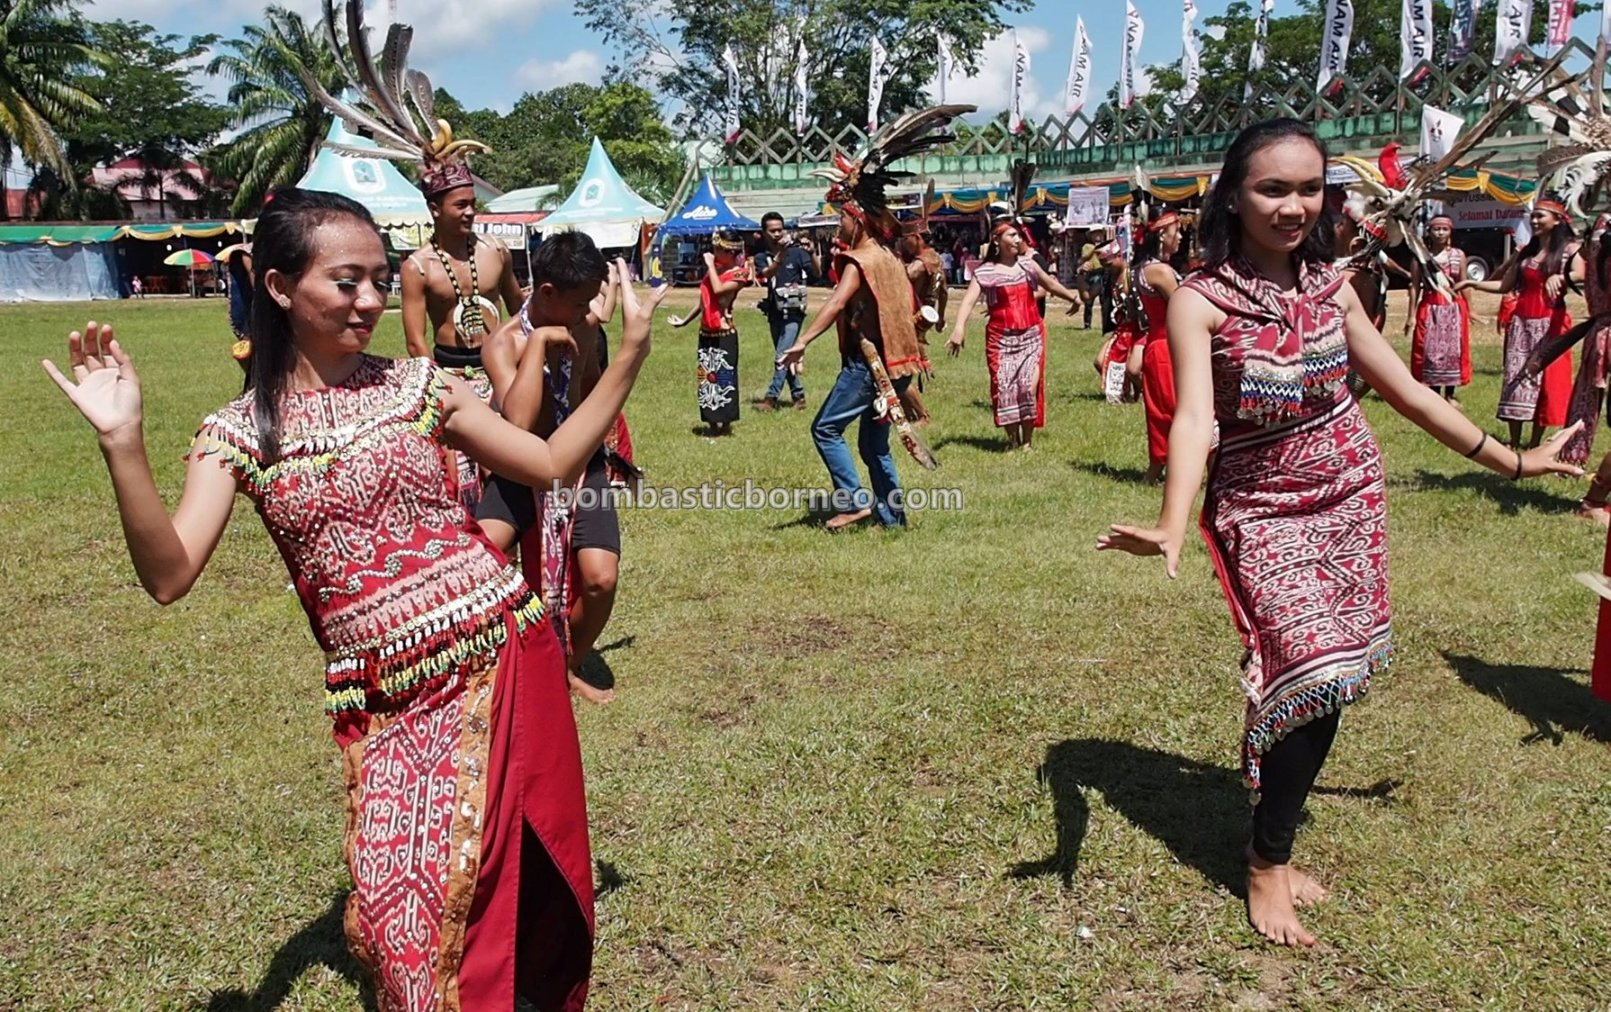 Kapuas Hulu, authentic, culture, event, Ethnic, indigenous, tribal, Suku Dayak, Tourism, tourist attraction, travel guide, Trans Borneo, 婆罗洲西加里曼丹, 卡普阿斯胡卢原住民, 达雅部落丰收节日